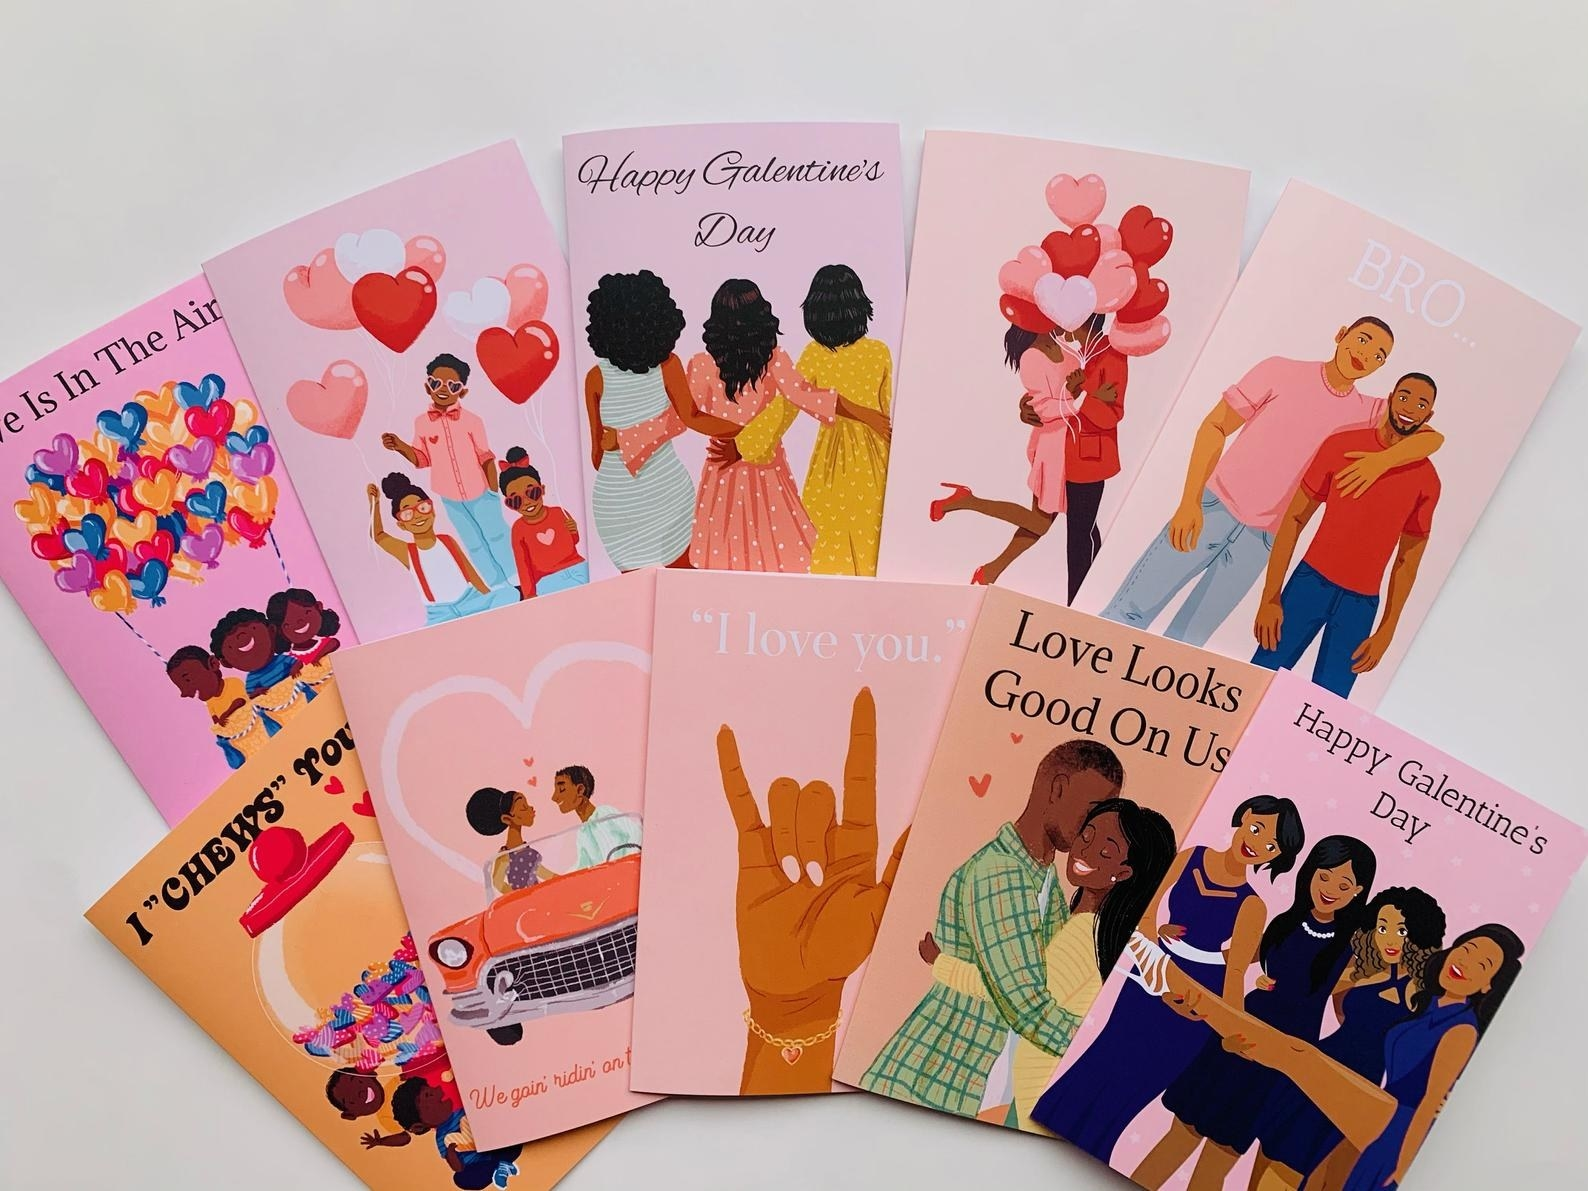 A set of 10 cards all valentine's themed for different people including friends, brothers, kids, and more